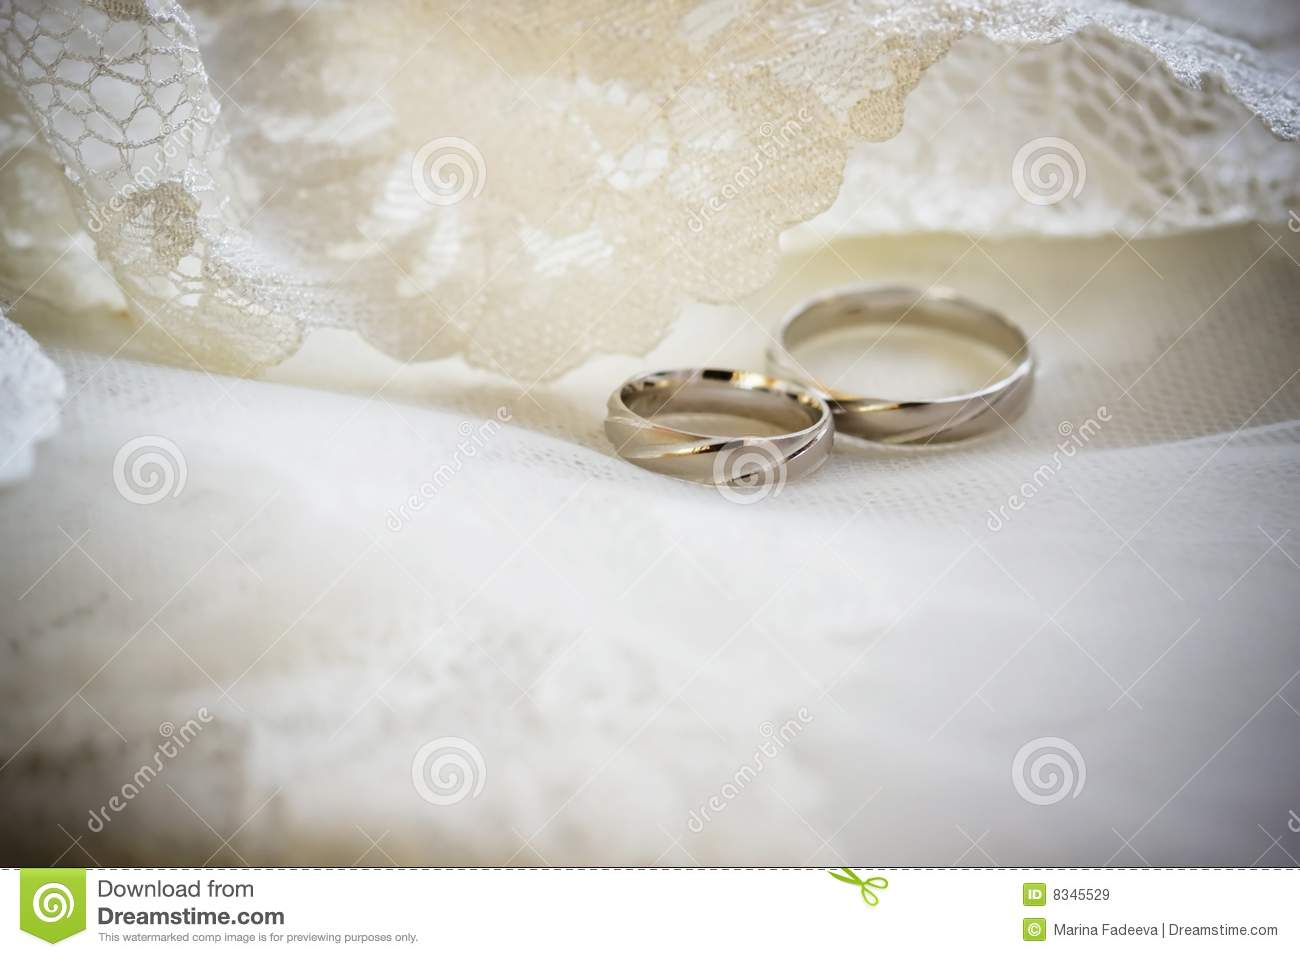 Wedding Rings On A Lace Background Stock Image Image of beautiful